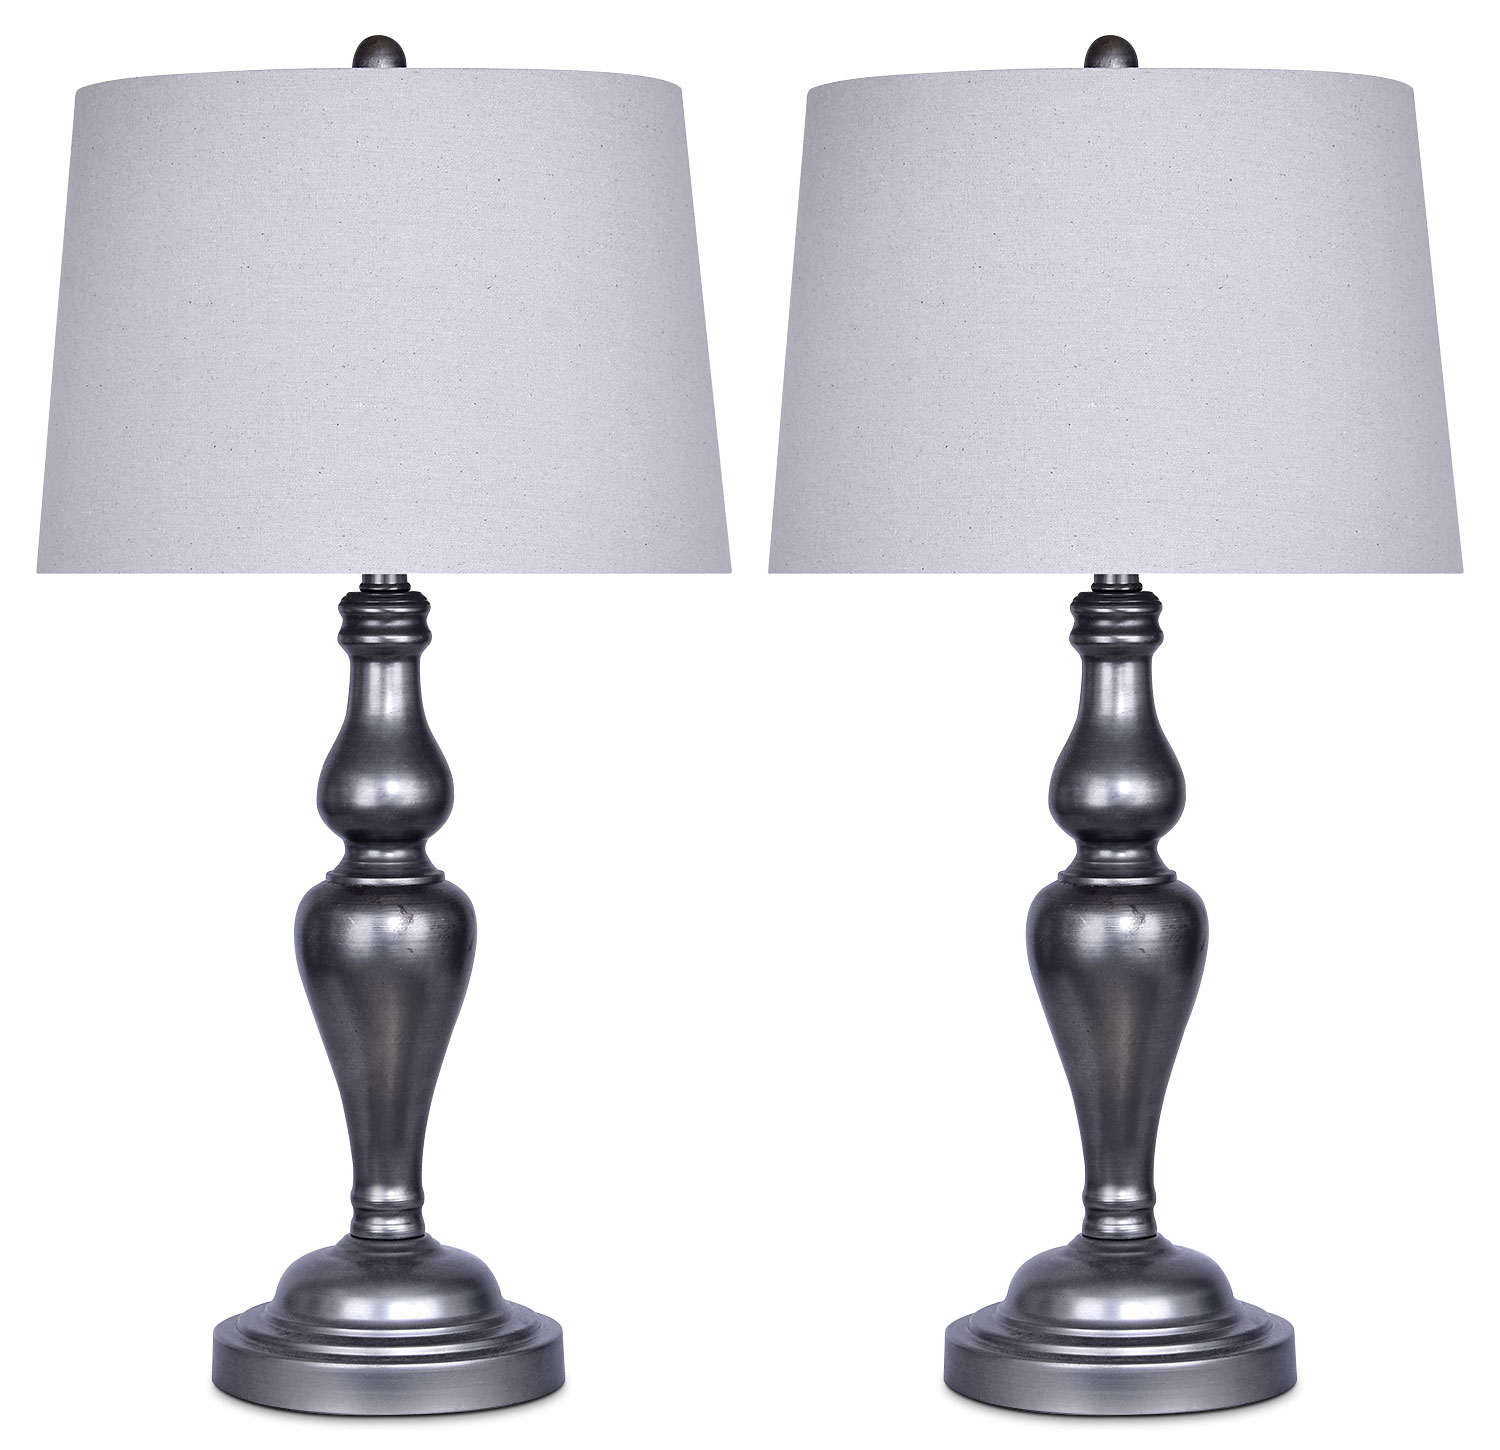 Home Accessories - Vintage Metal 2-Piece Table Lamp Set